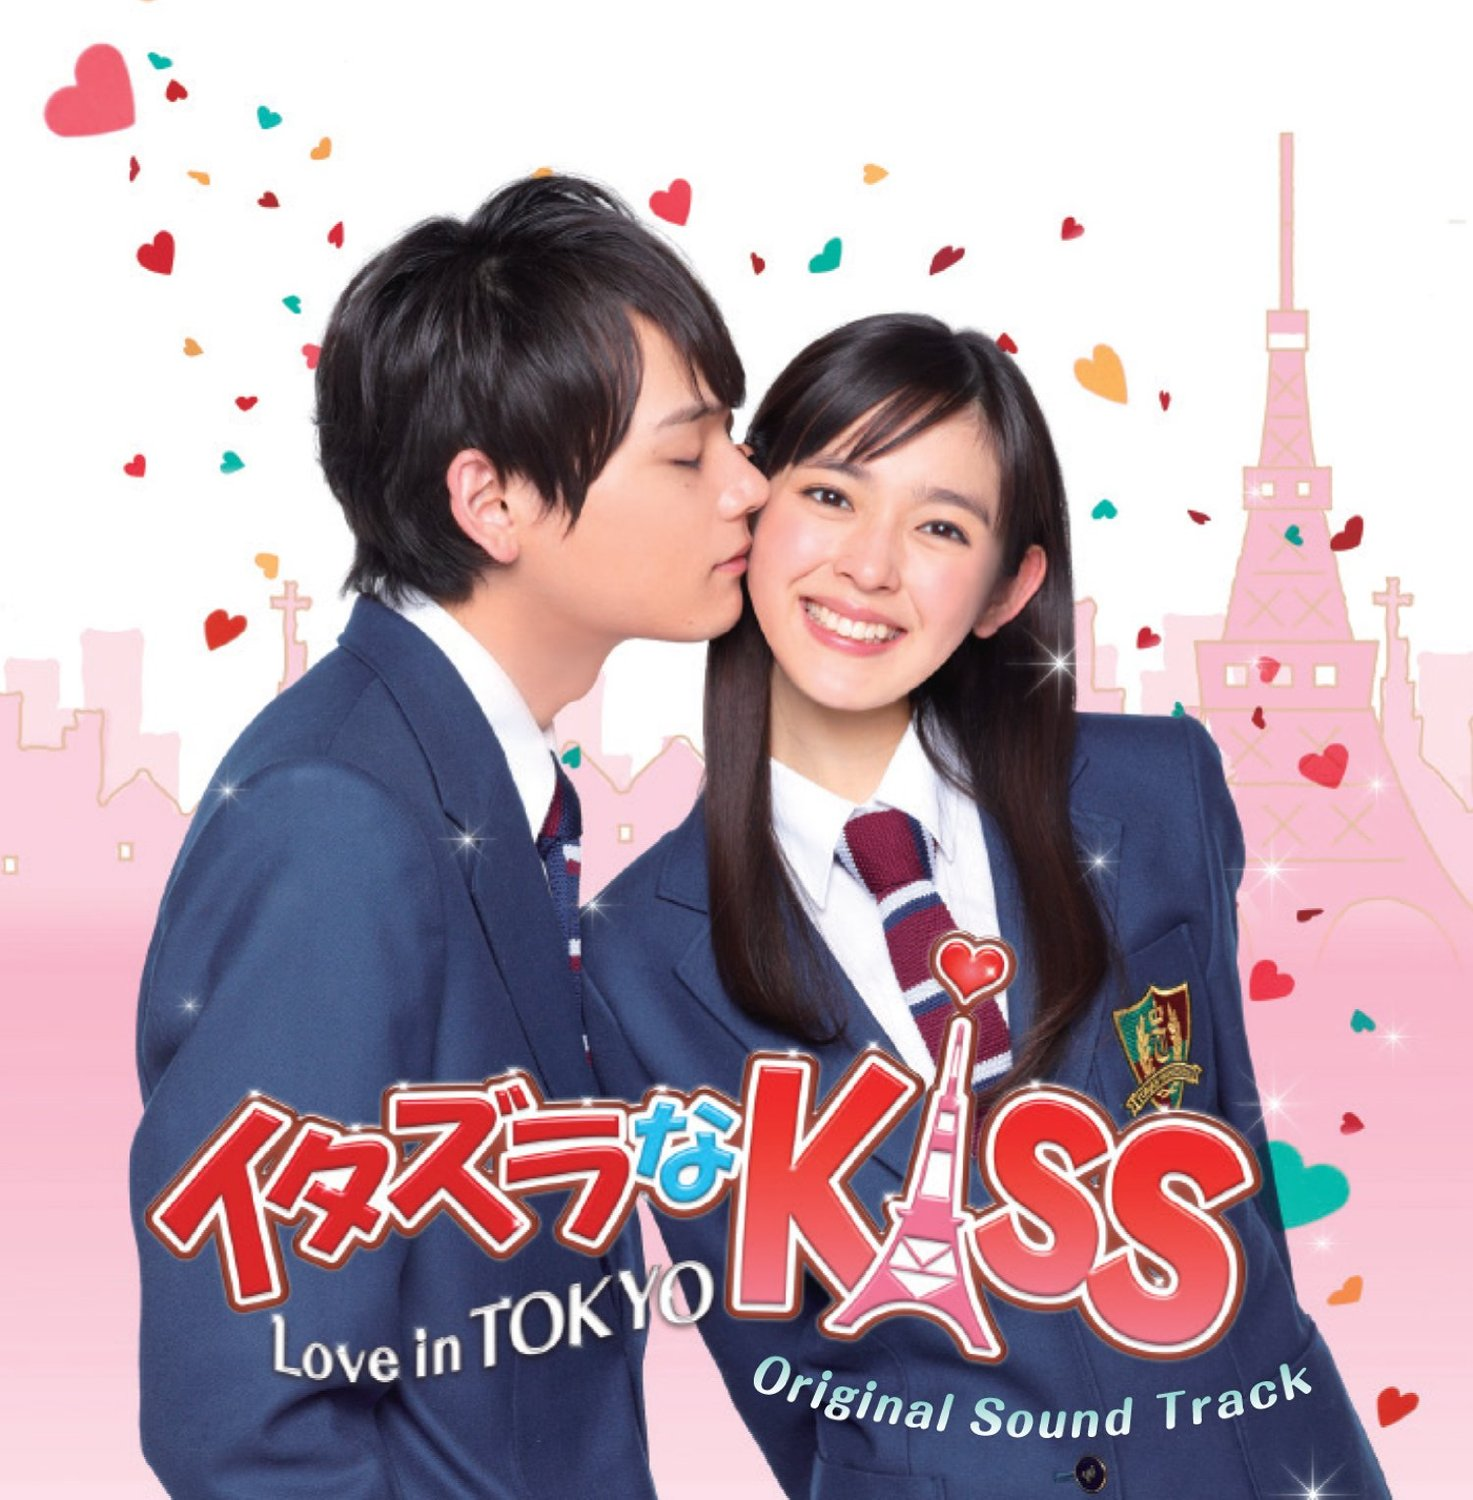 Kiss of love song